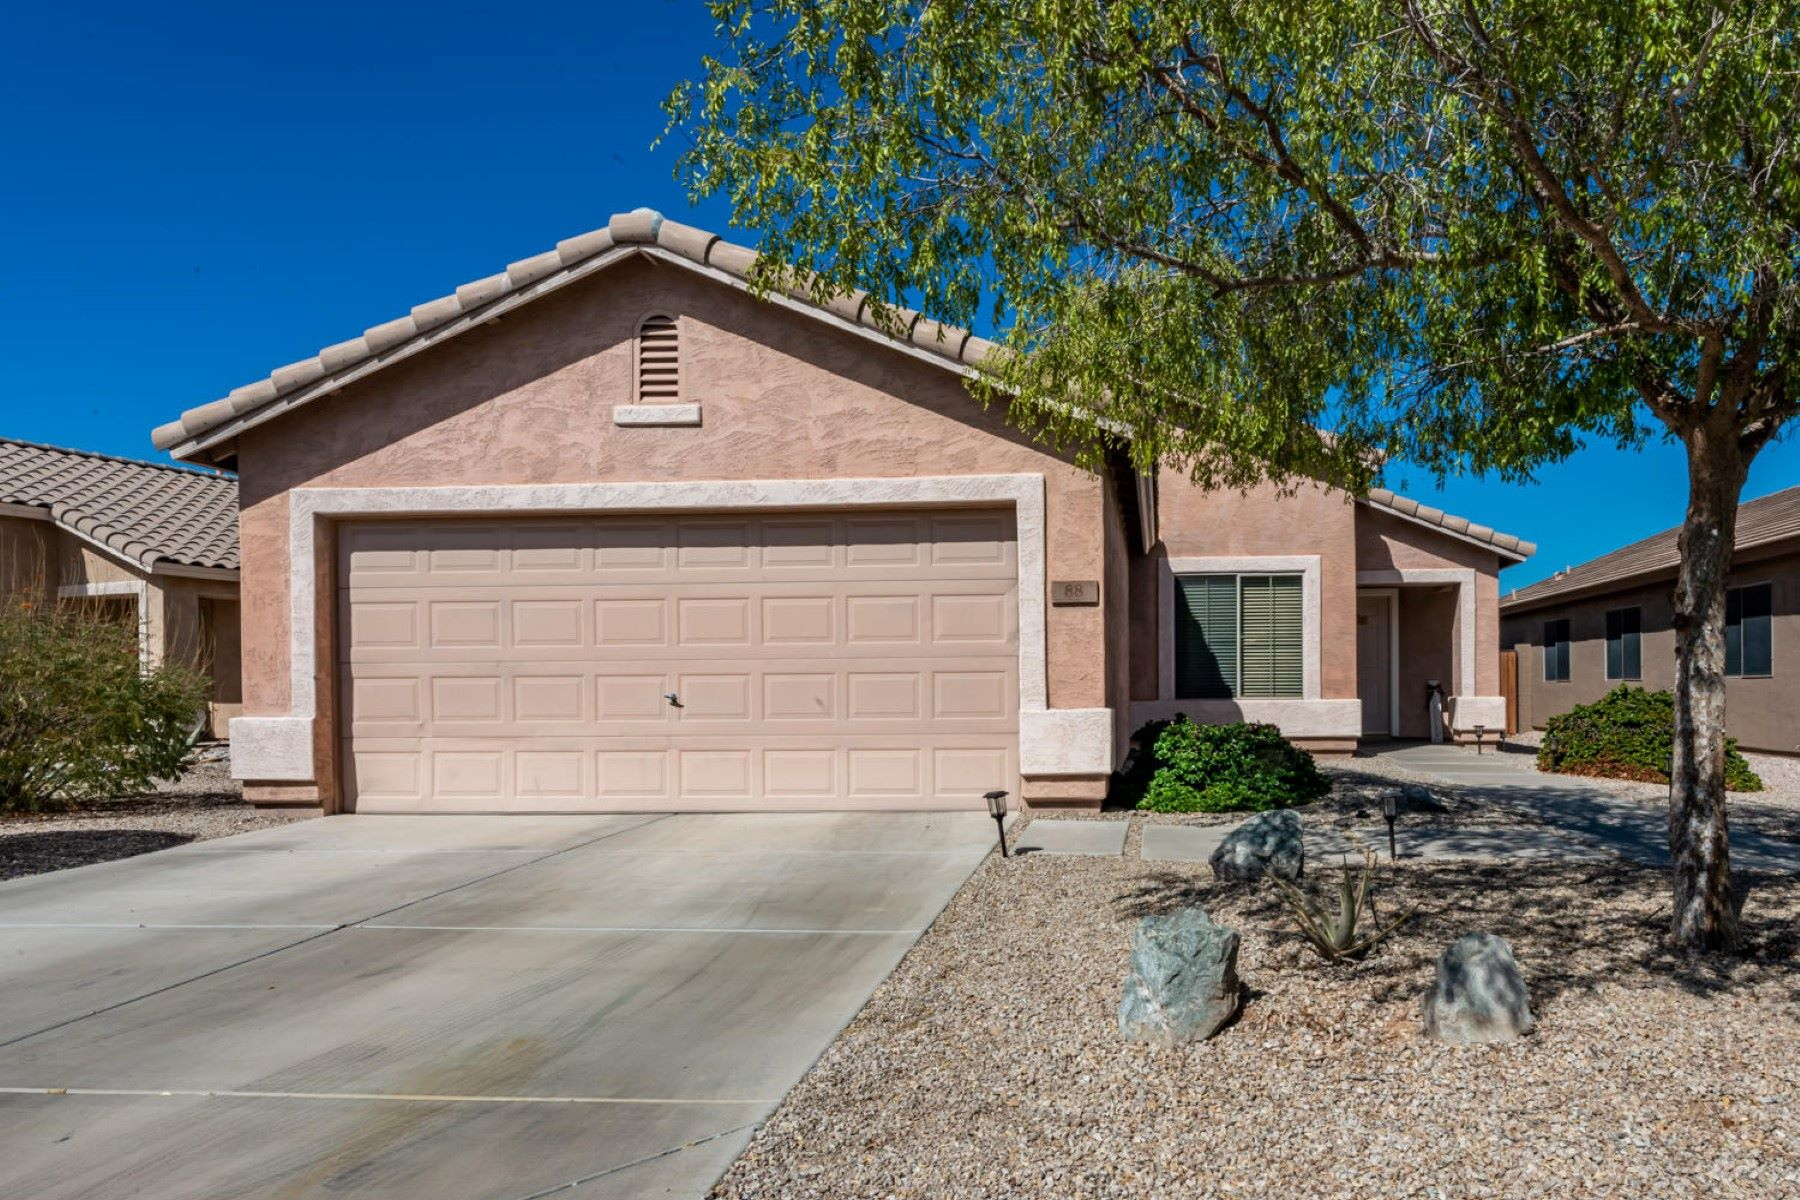 Single Family Homes for Sale at Stonegate At Johnson Ranch 88 East Lupine Place Queen Creek, Arizona 85143 United States